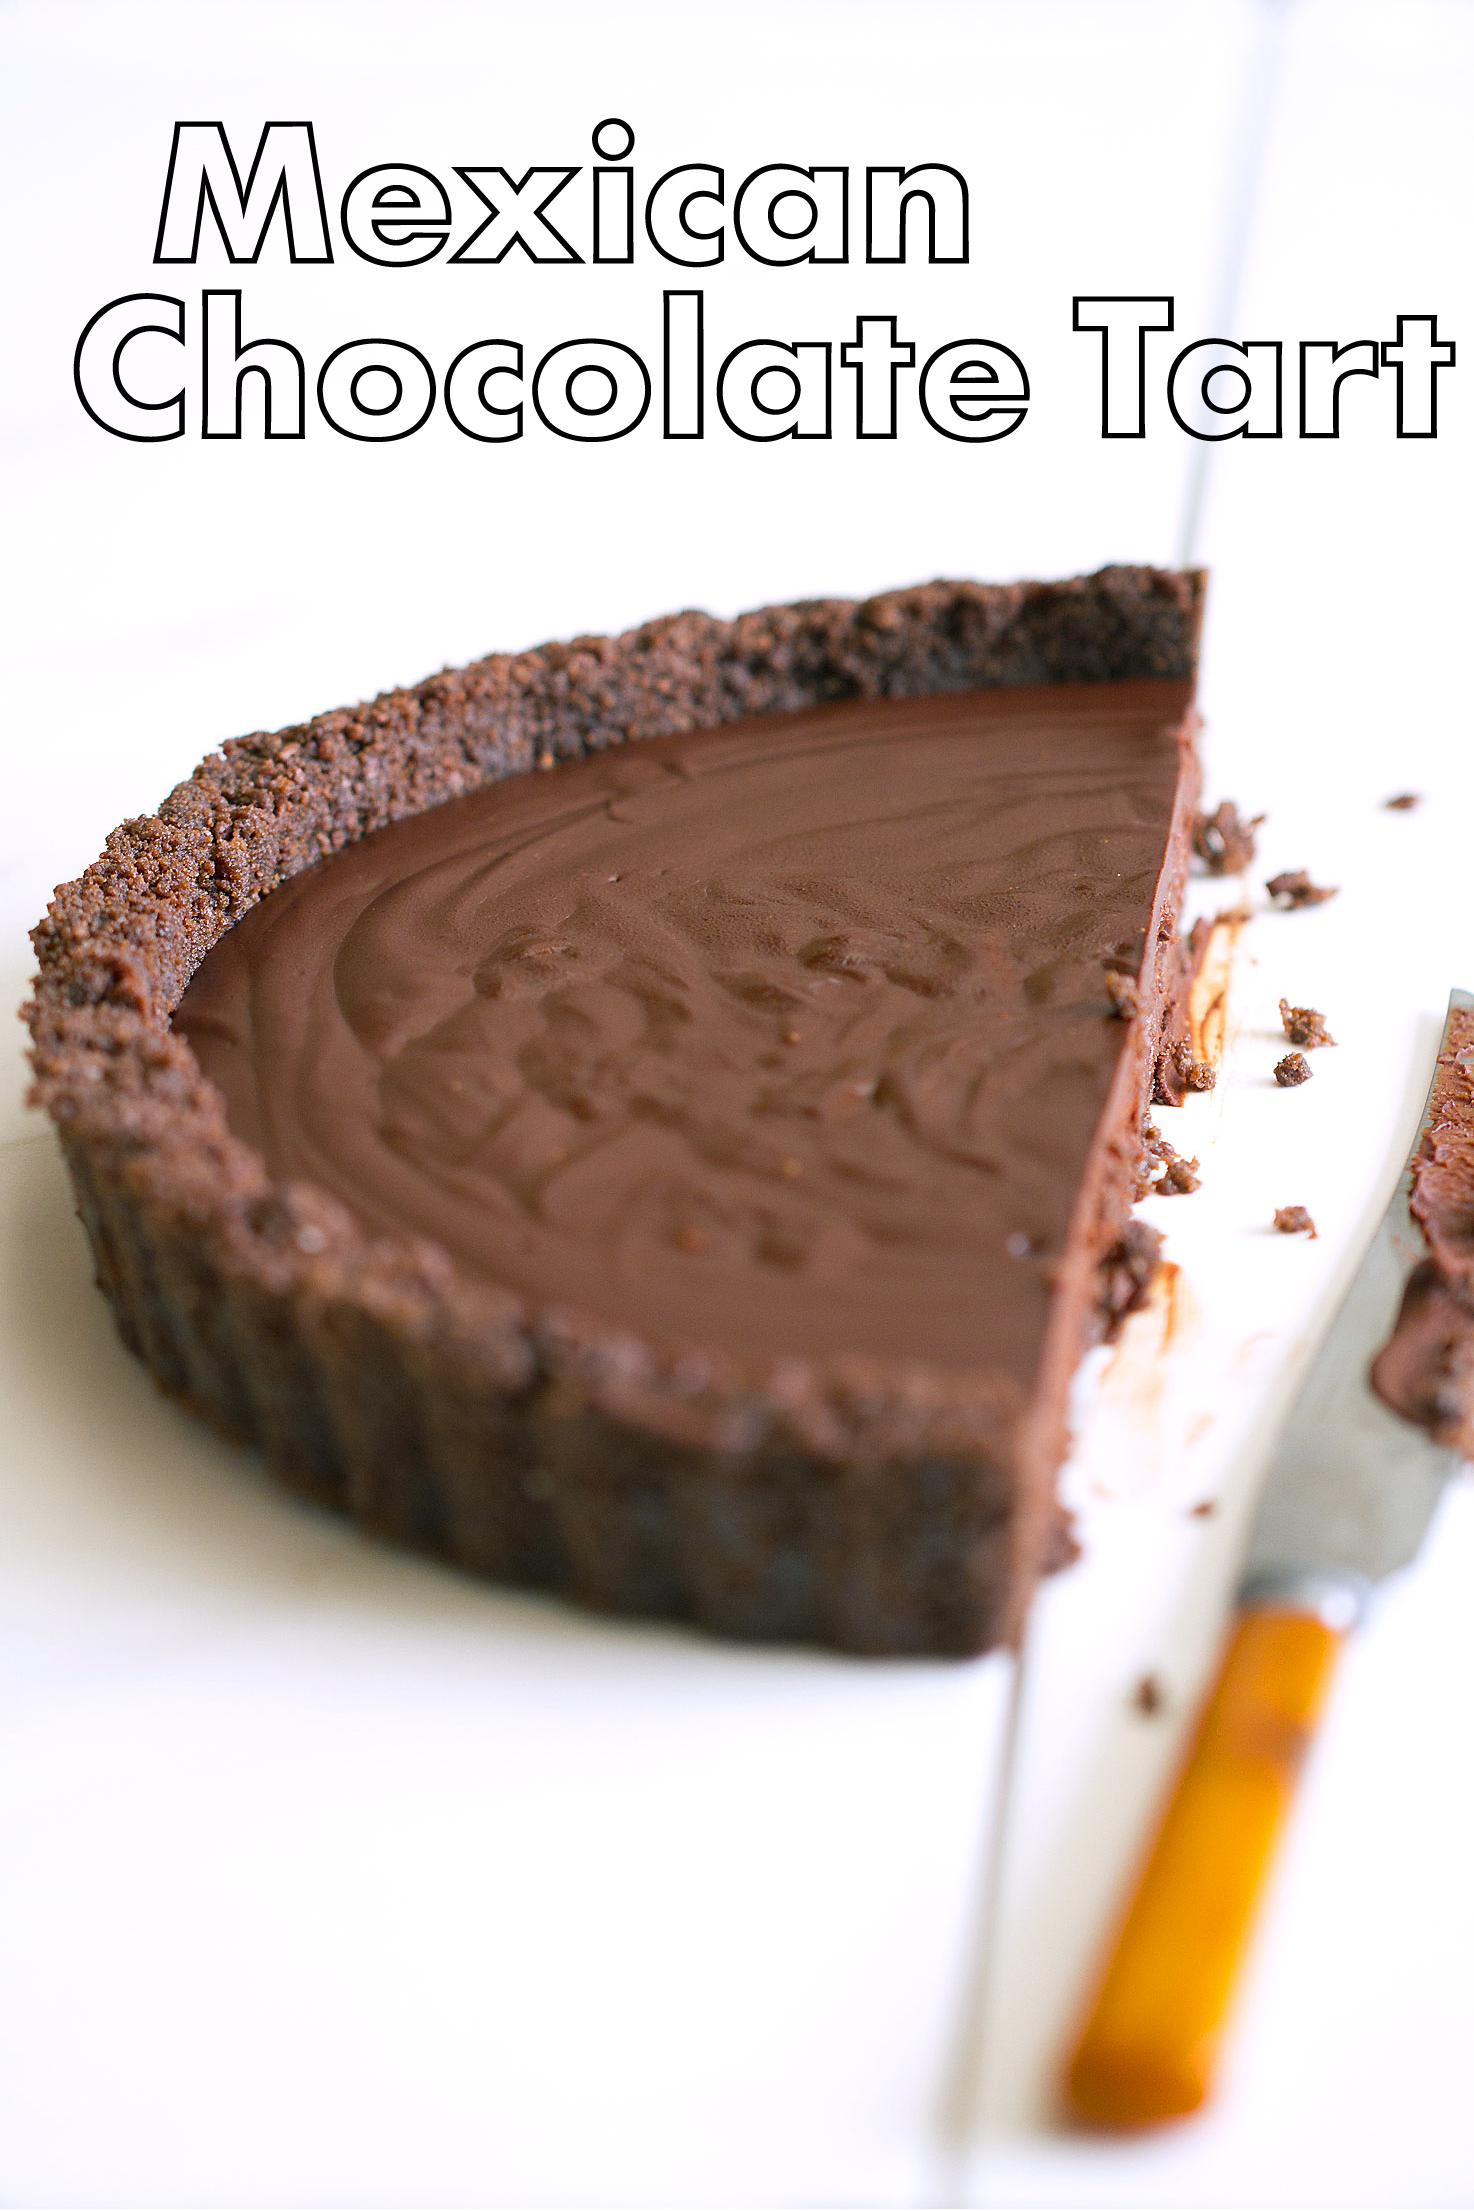 Mexican Chocolate Made into a Tart - SippitySup